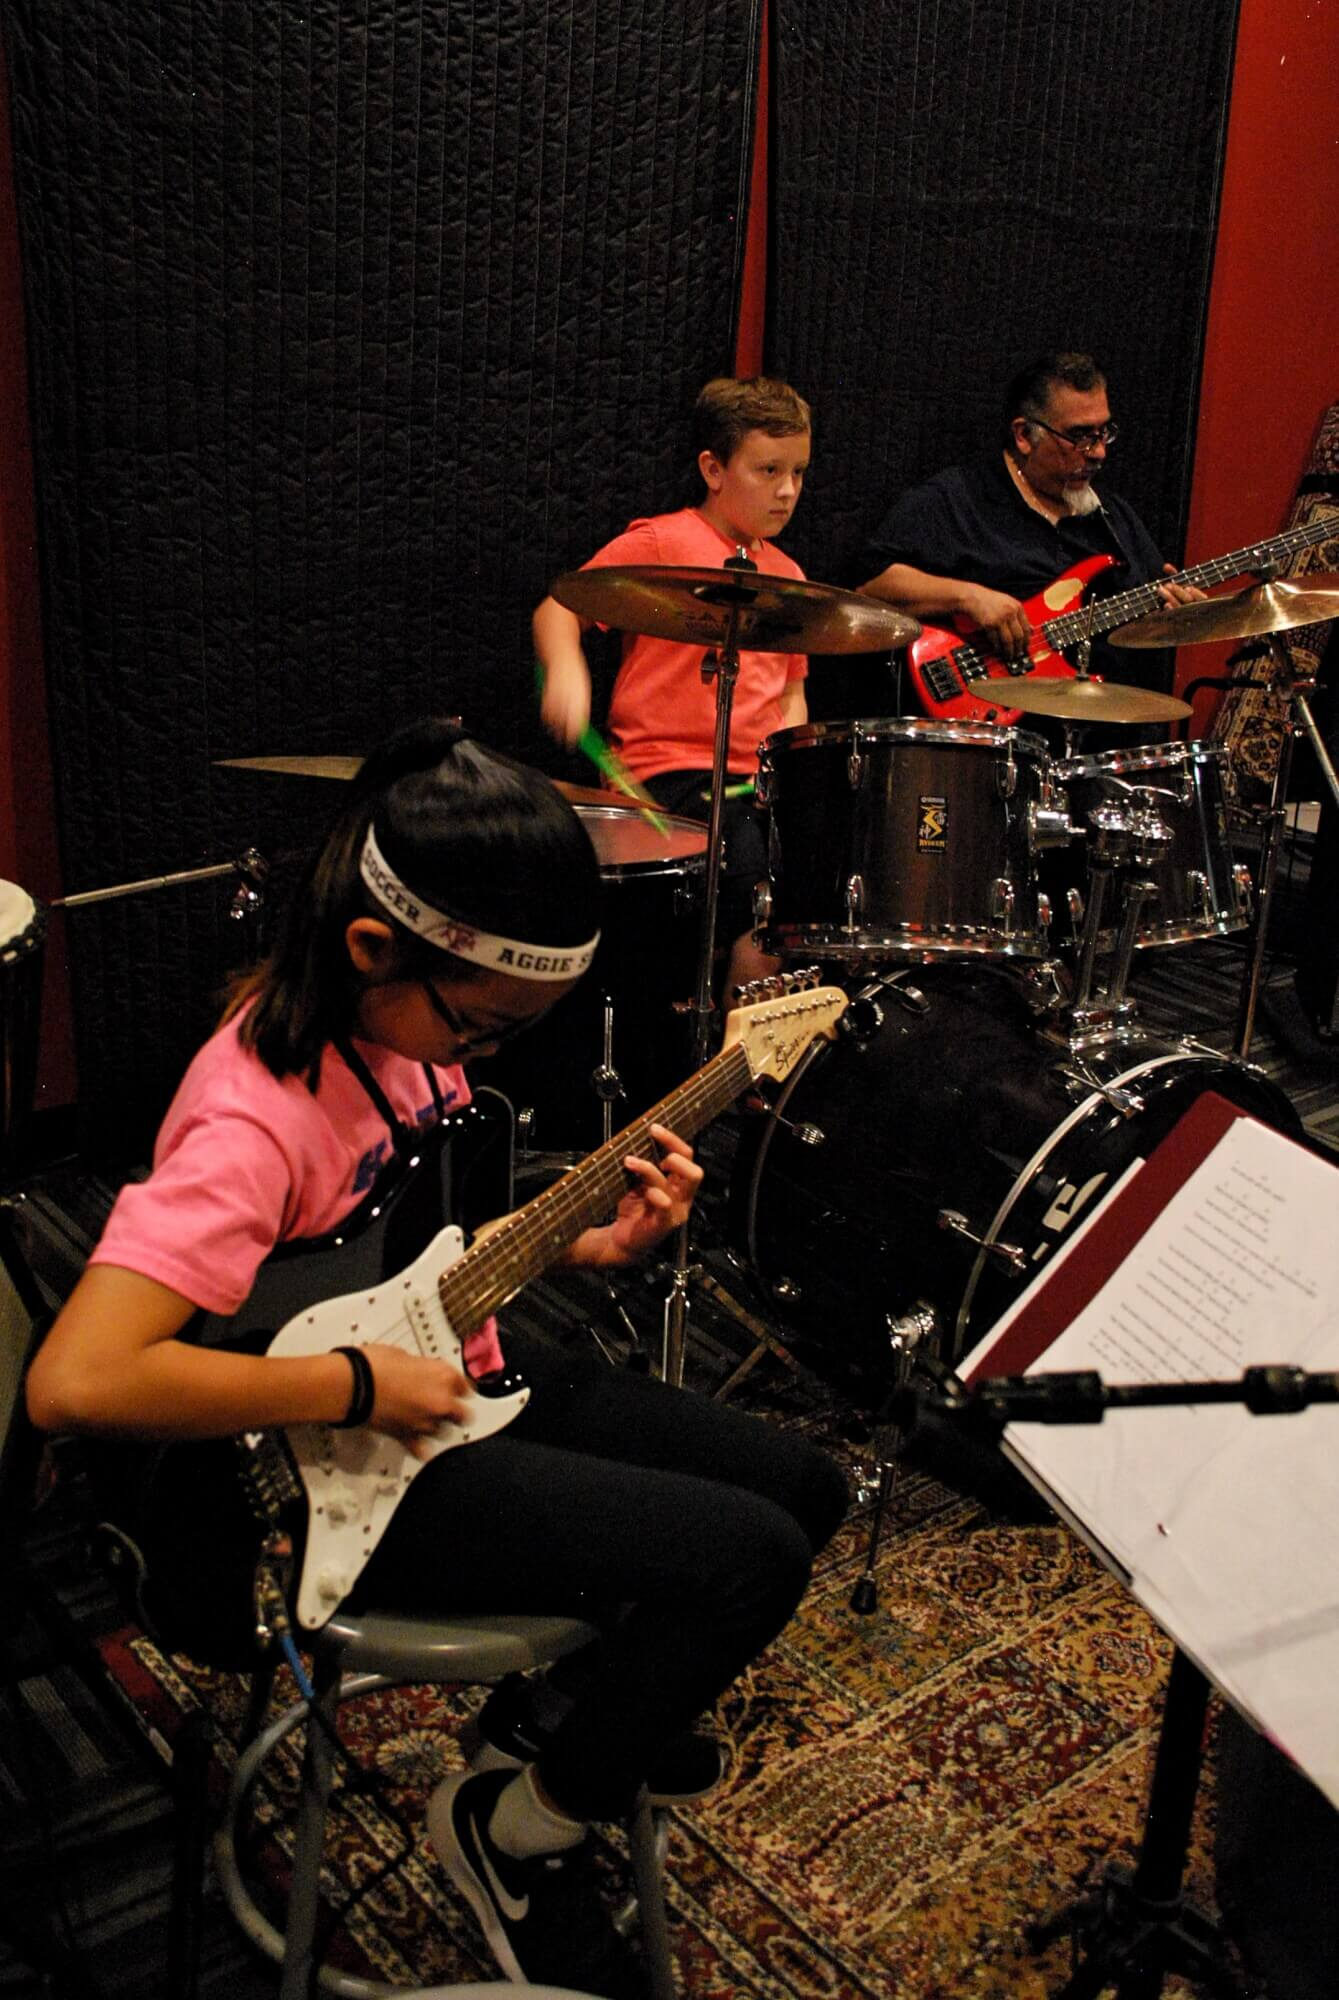 Rock 101 students work through their parts with Director Evetier Barron, laying down some bass.